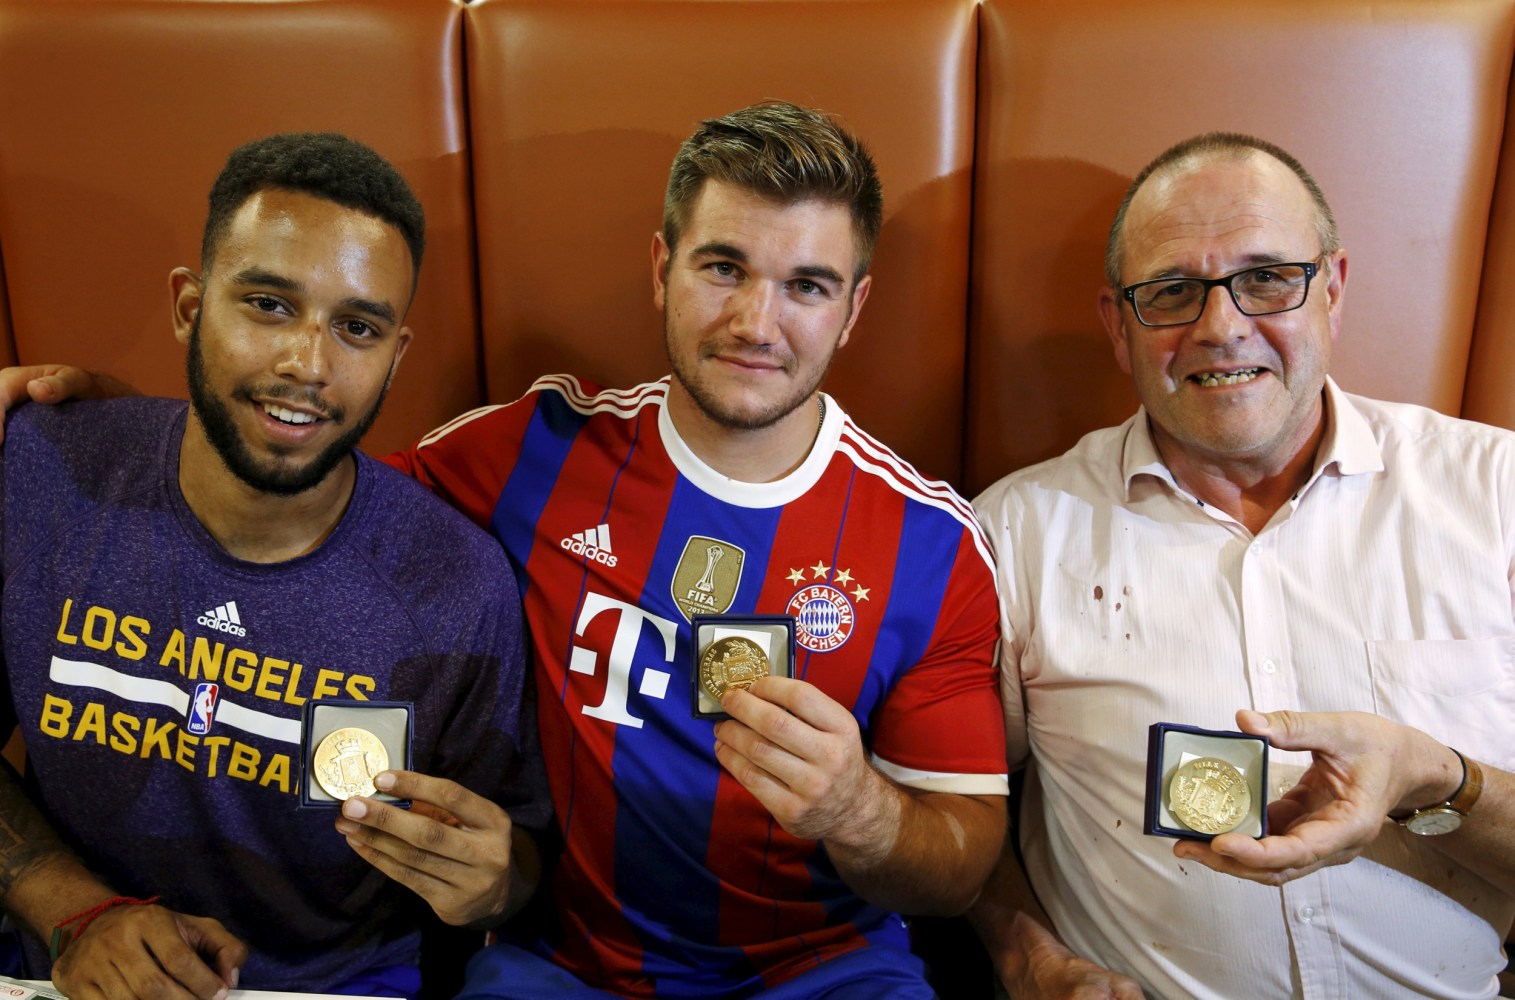 Anthony Sadler, from Pittsburg, California, Aleck Sharlatos from Roseburg, Oregon, and Chris Norman, a British man living in France (L-R), three men who helped to disarm an attacker on a train from Amsterdam to France